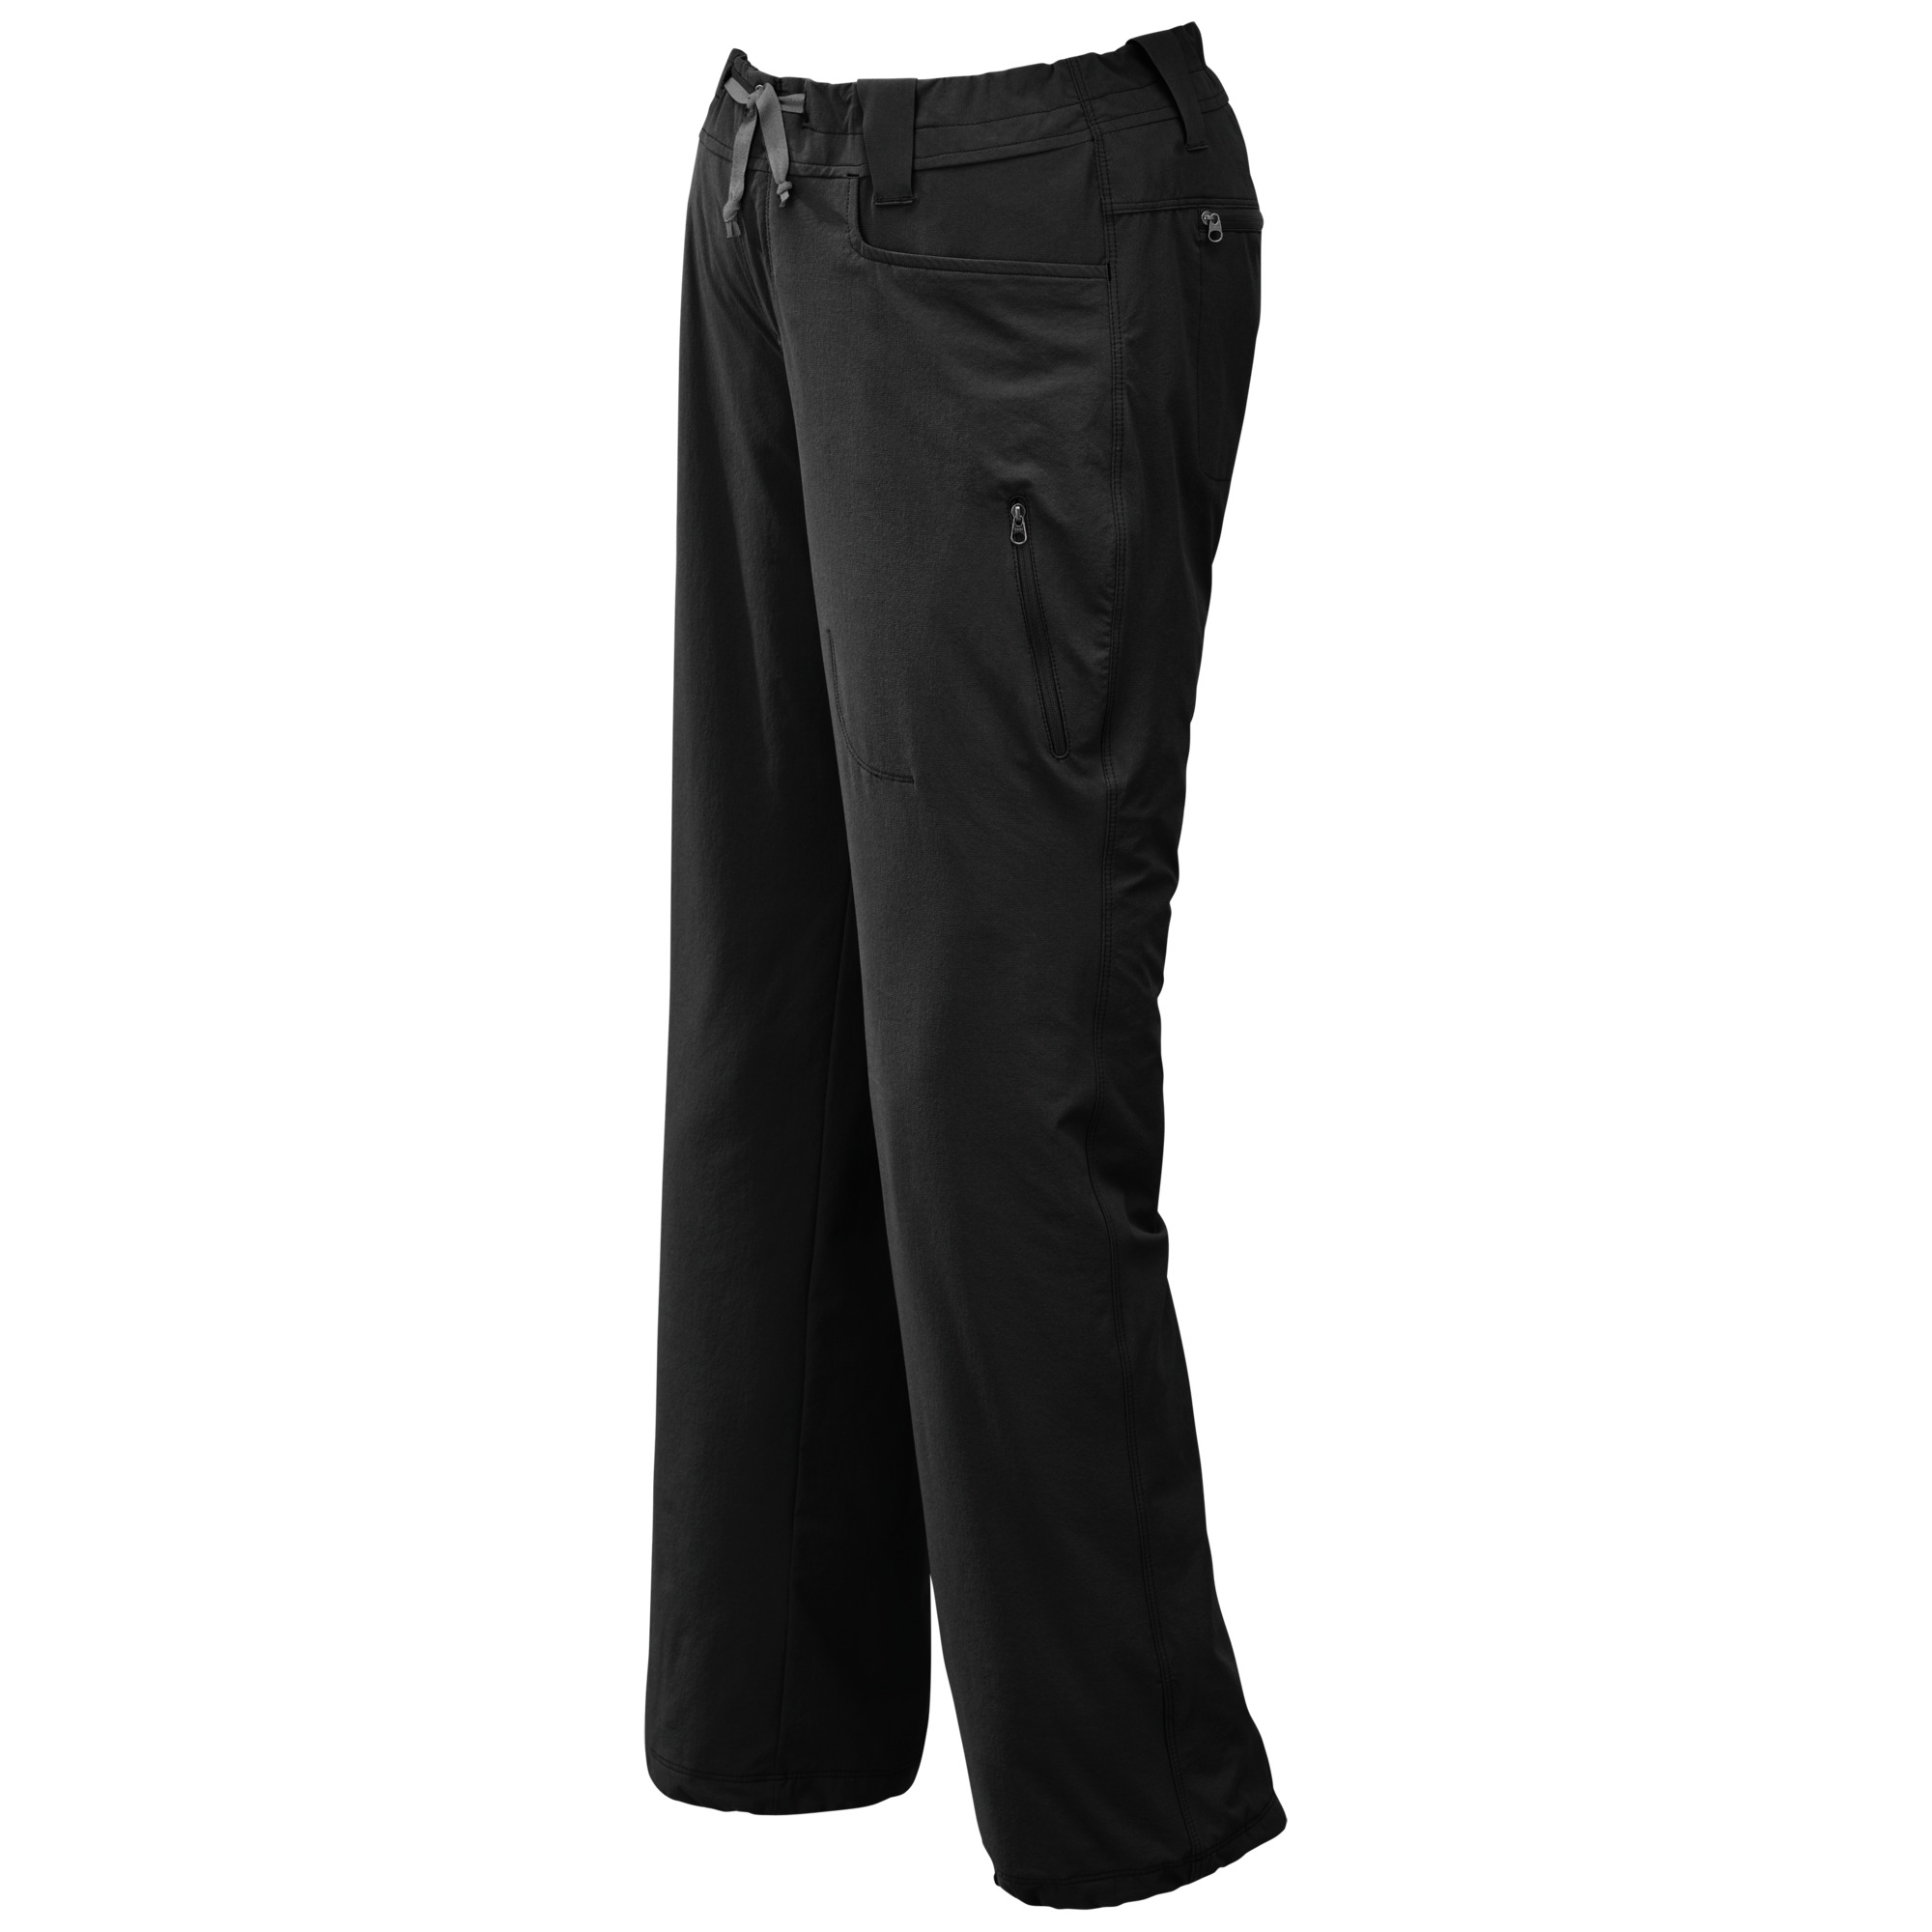 Outdoor Research Women's Ferrosi Pants-black-8 - Gr. 8